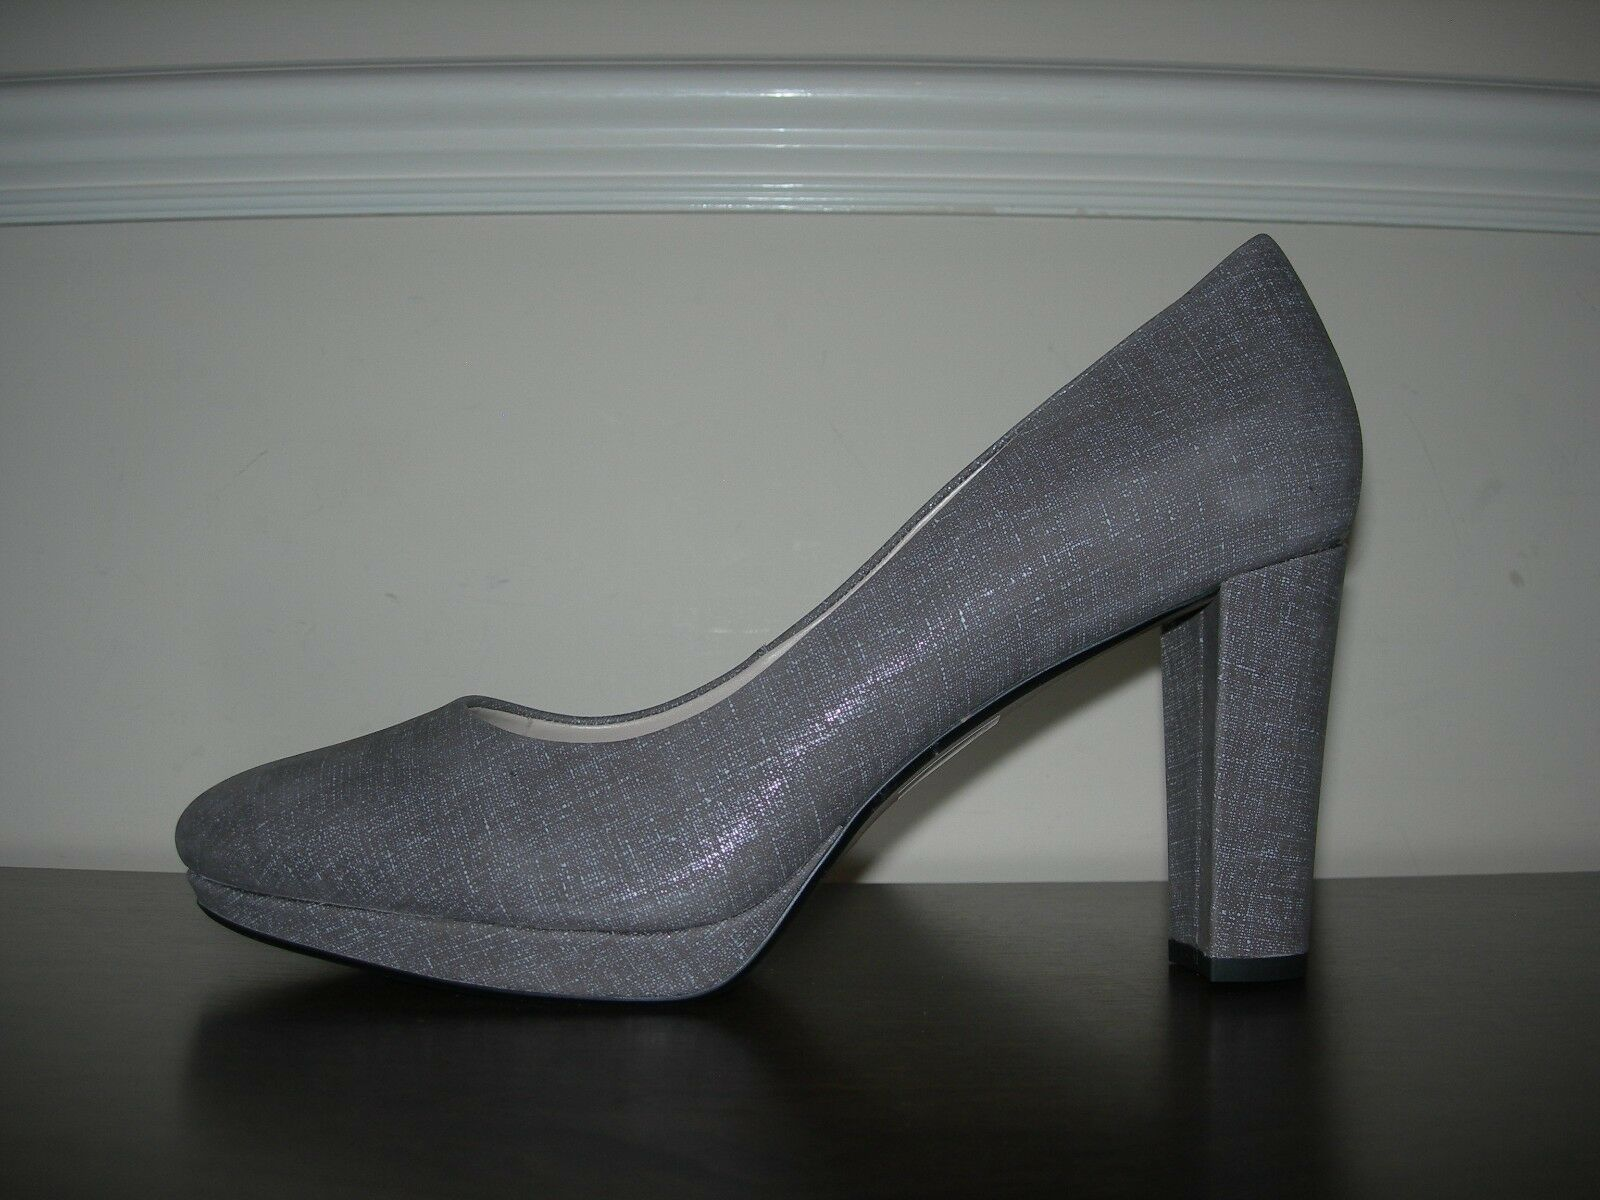 CLARKS NARRATIVE WOMEN'S COURT Schuhe HIGH HEELS GREY LEATHER EU 43 / UK 9 D